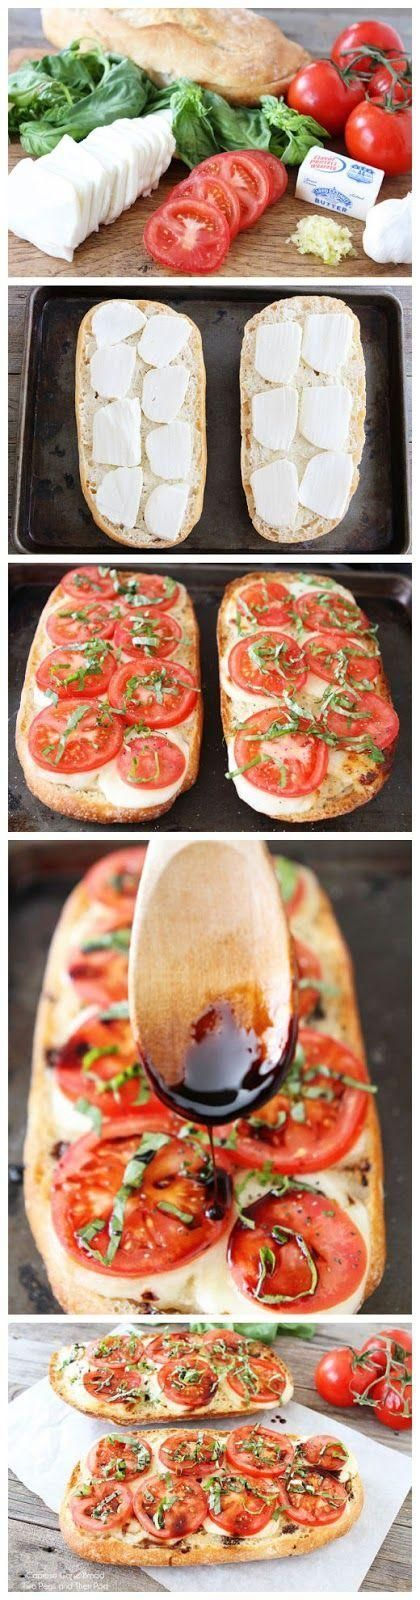 Caprese Garlic Bread - Love with recipe.